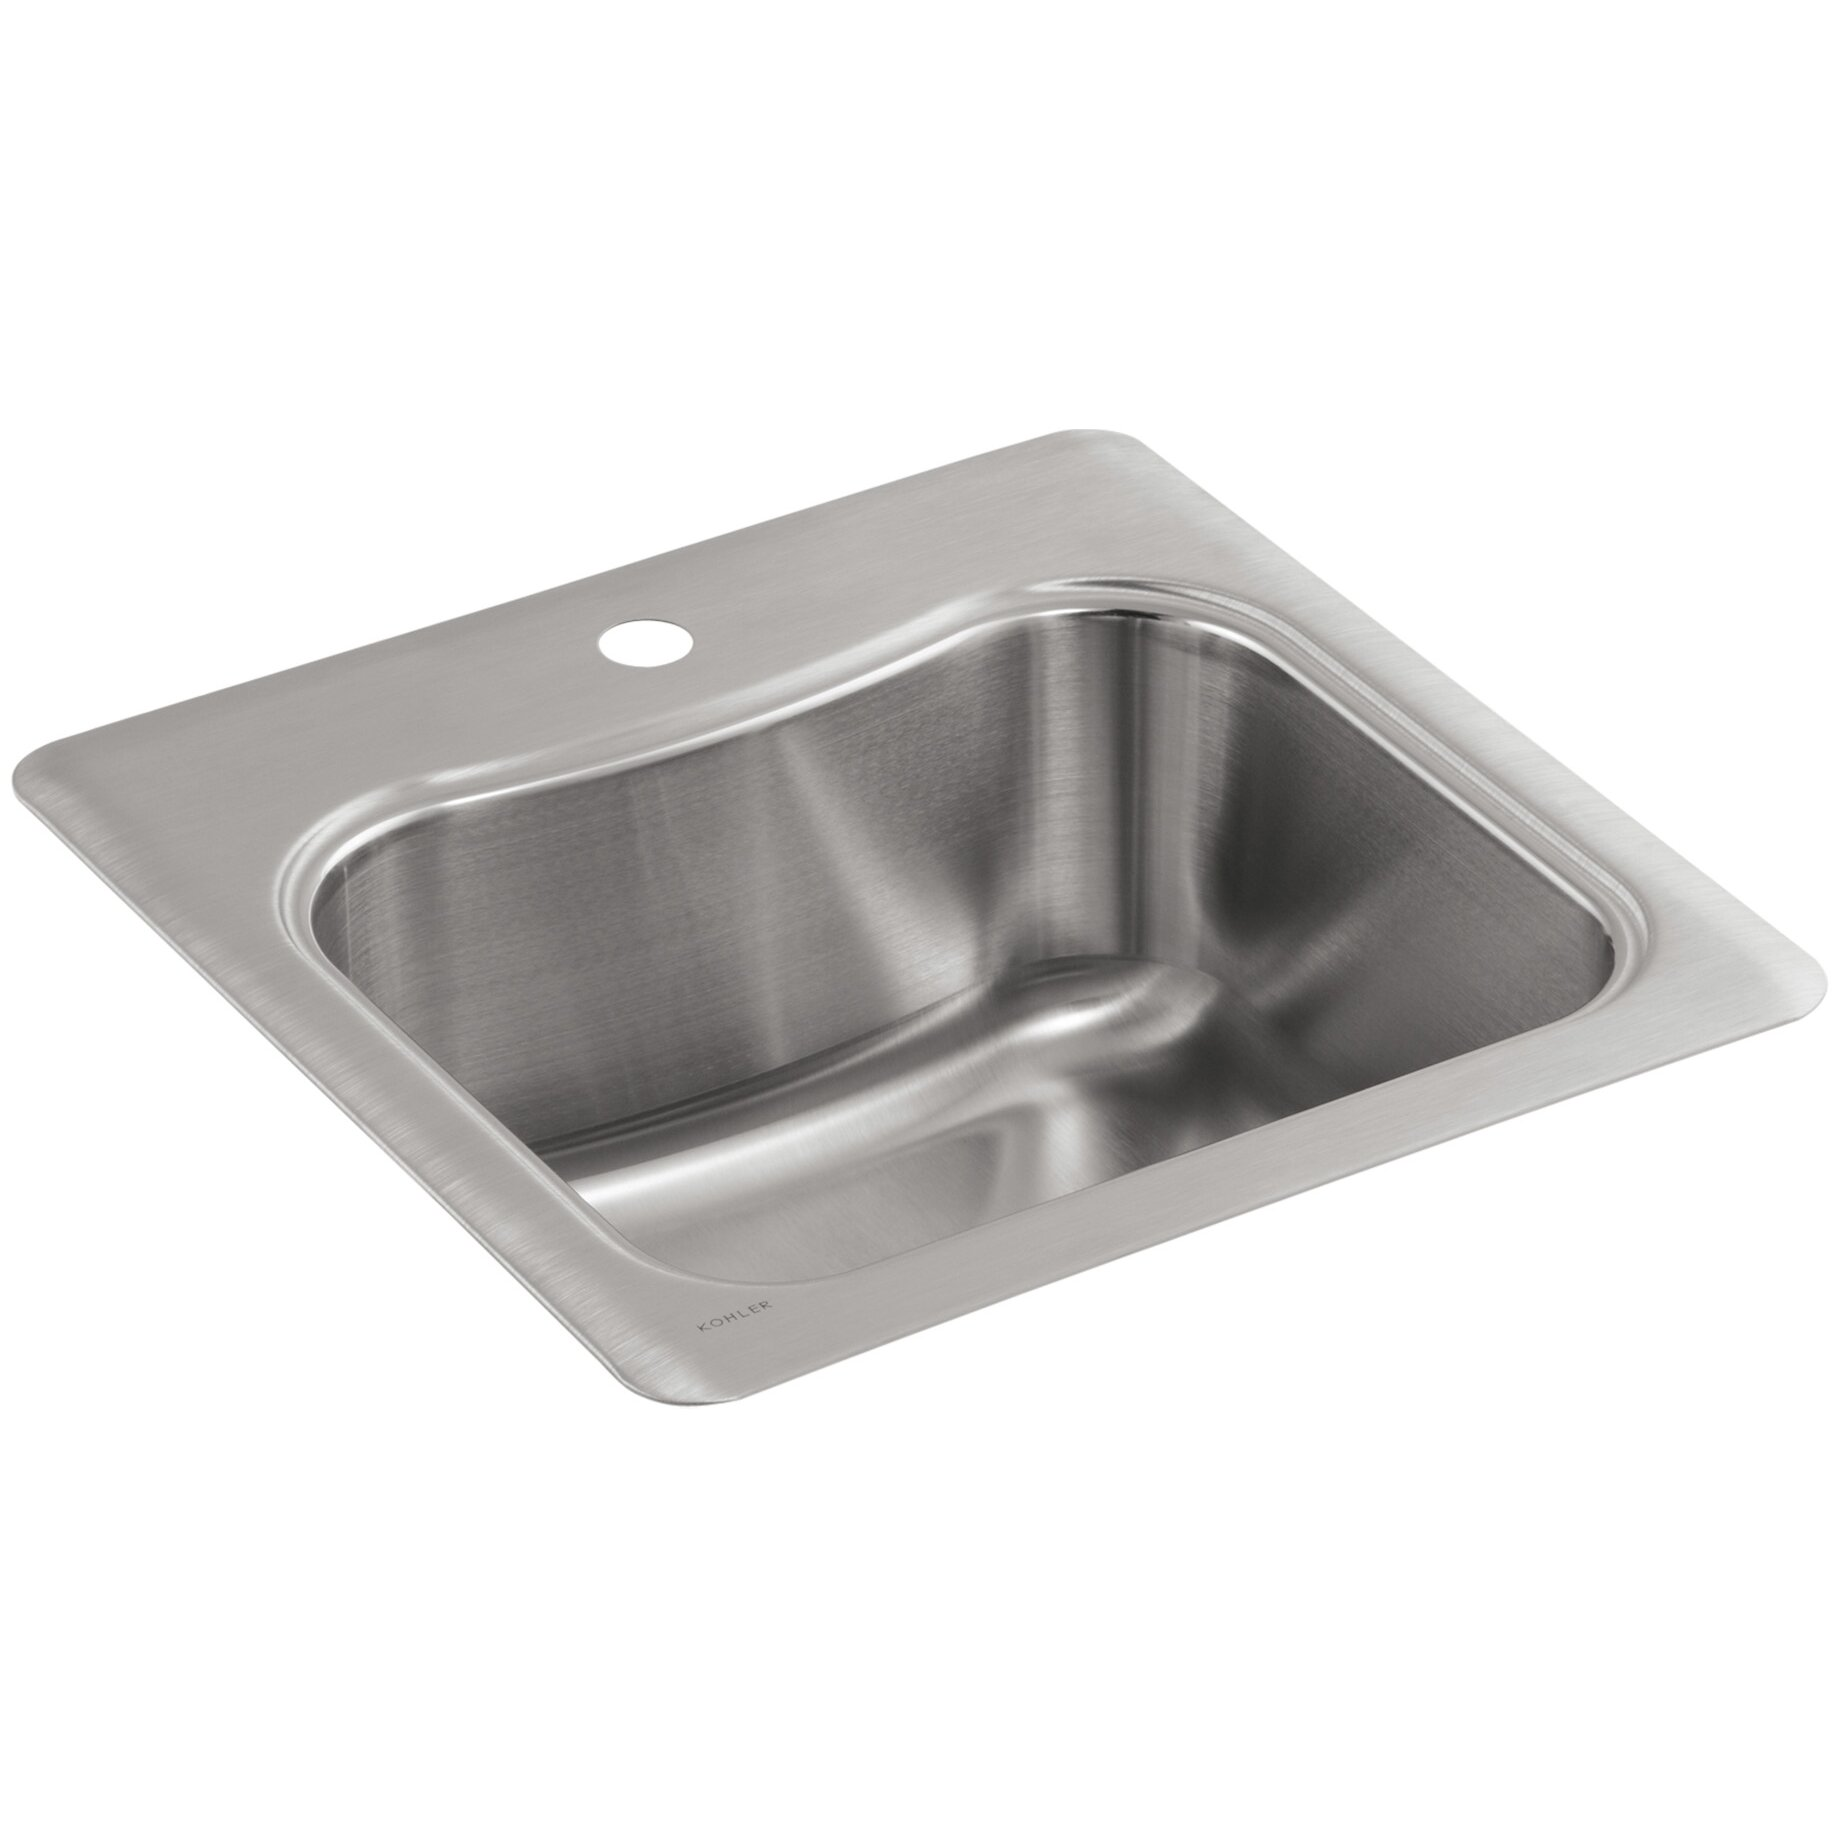 Kohler Staccato Top-Mount Single-Bowl Bar Sink with Single Faucet Hole ...